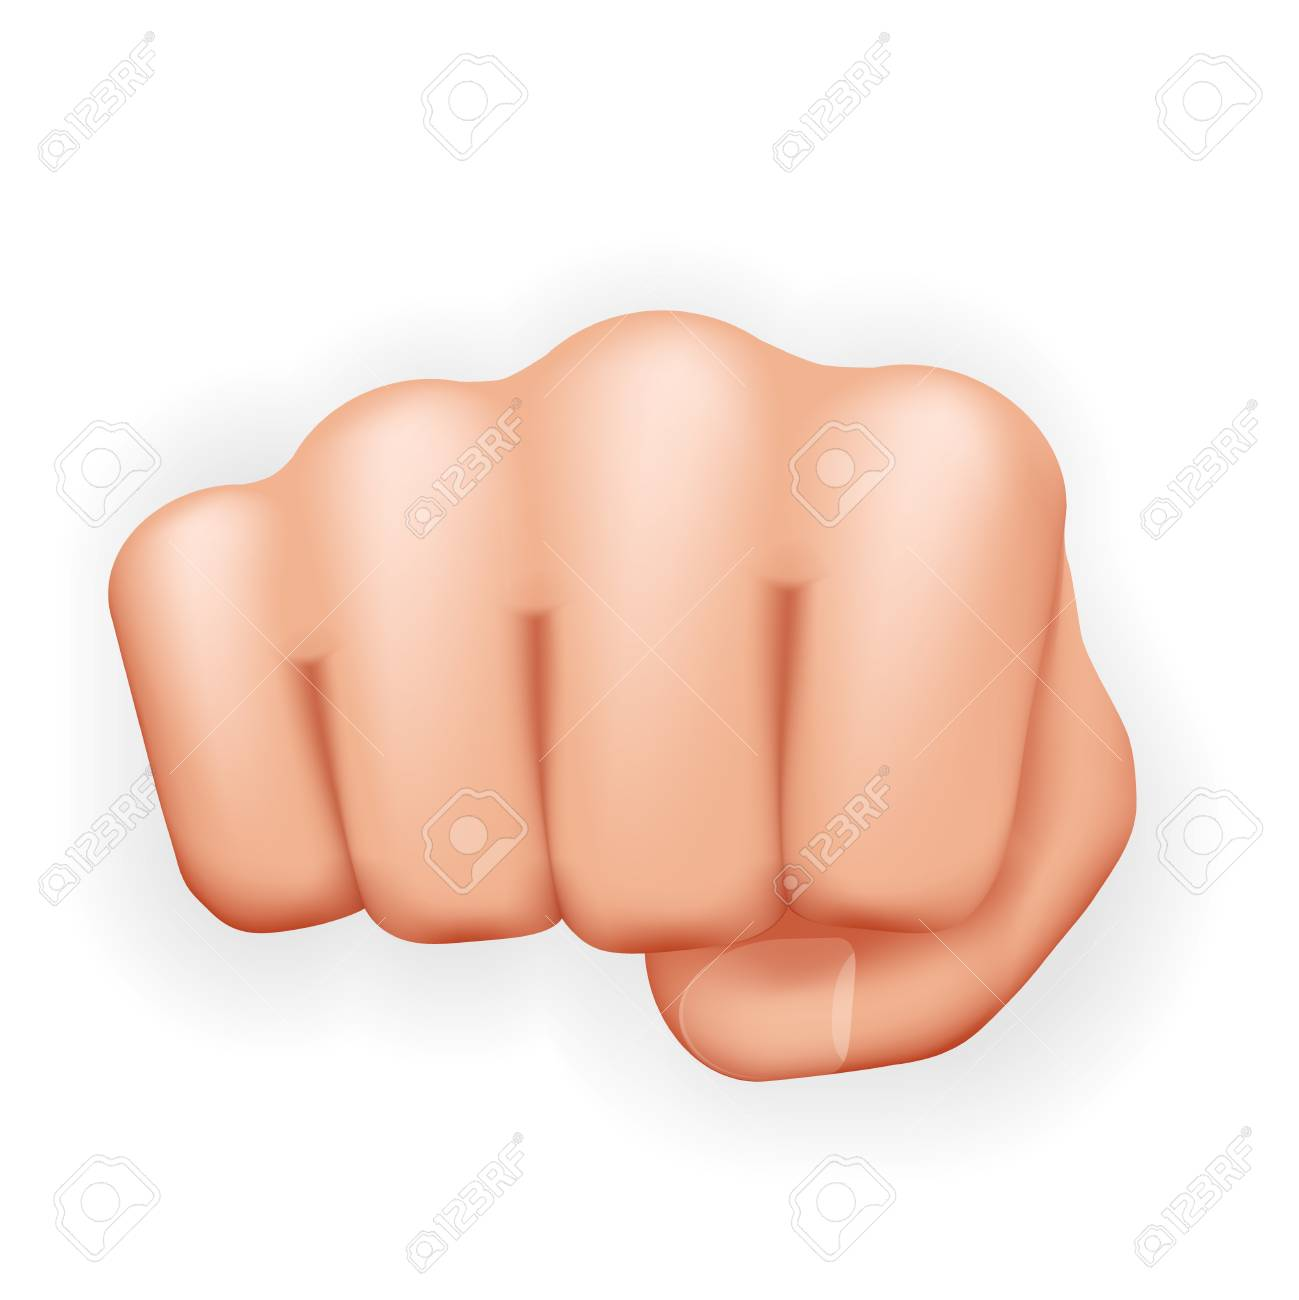 Strong hand punch fist power courage aggression protest fight realistic icon 3d isolated on white background vector illustration - 123124344